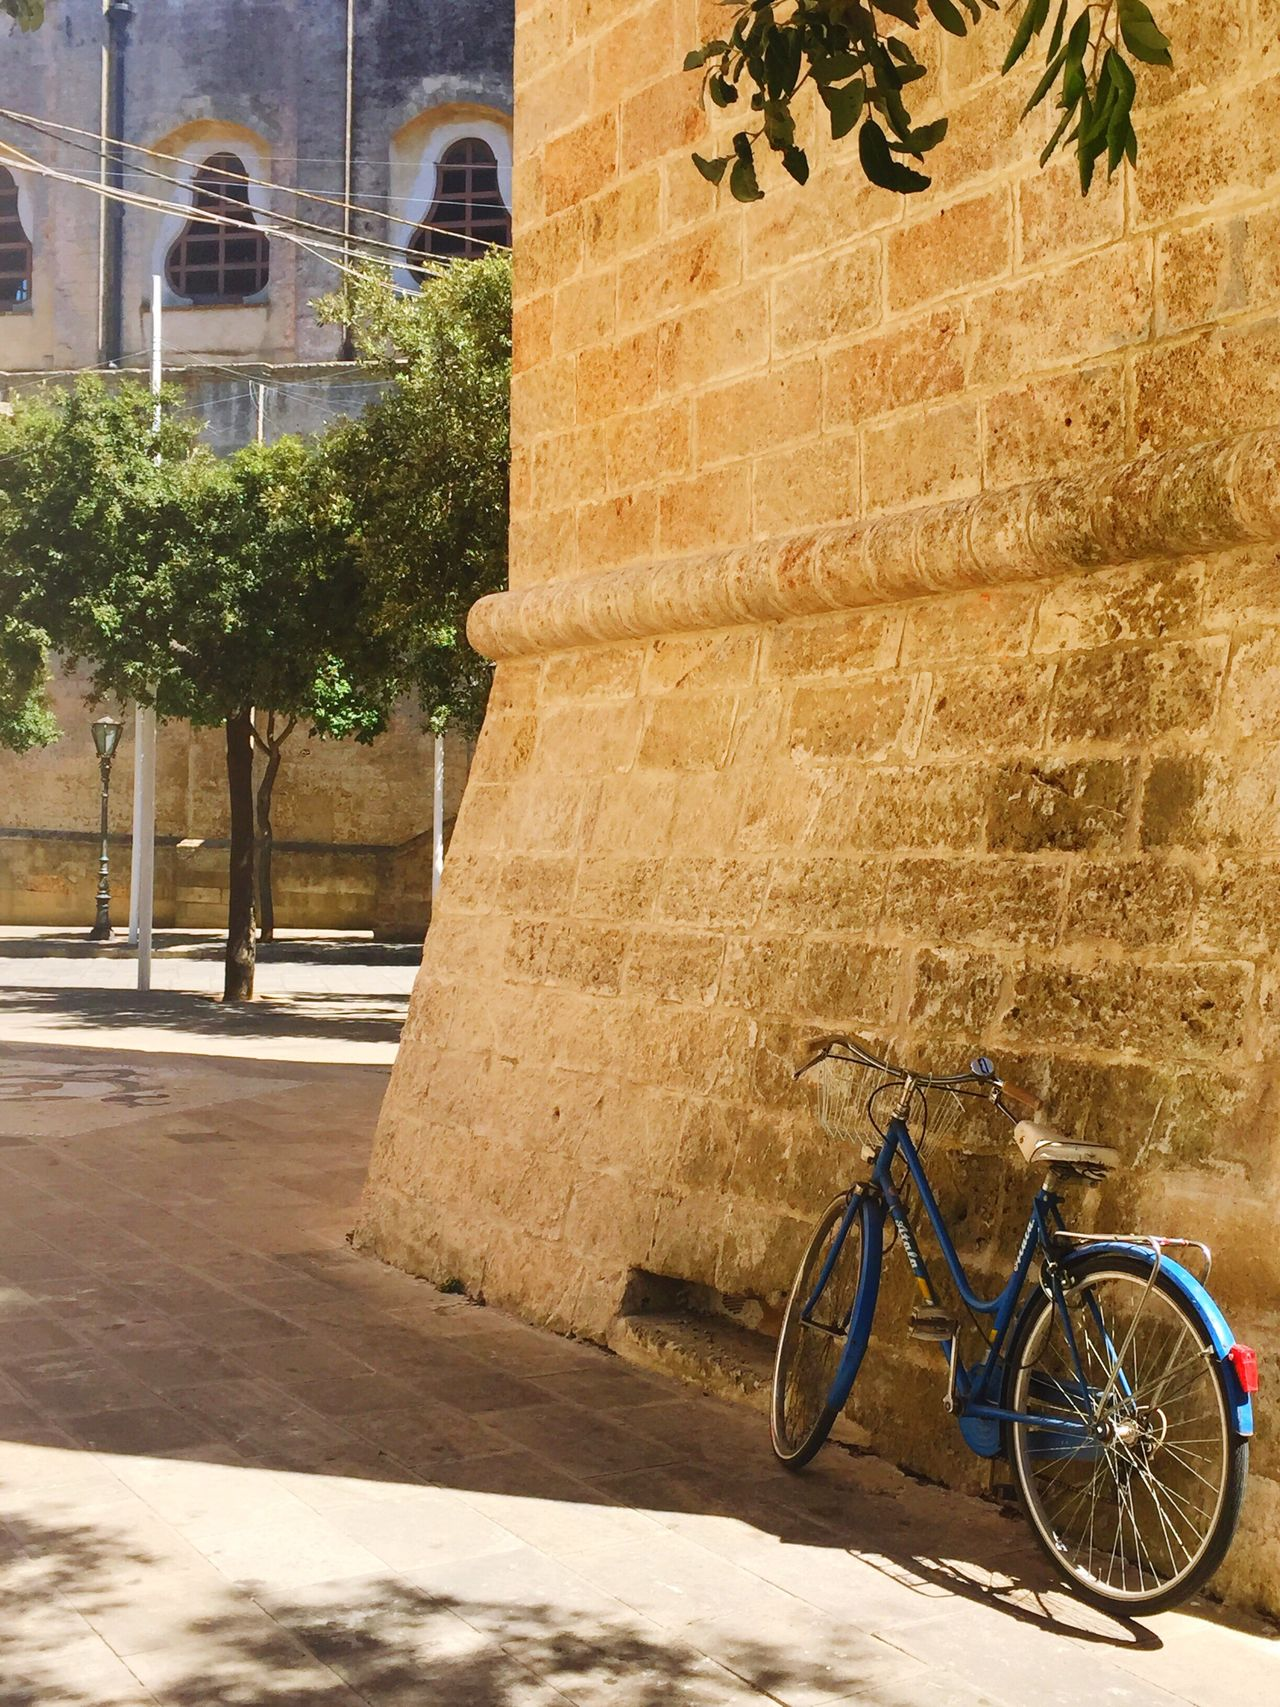 Sunny Day in Tricase Hidden Gems  Shadow Sunlight Colorful Hot Day Outdoor Blue Bicycle Puglia Italy Place Street Photography